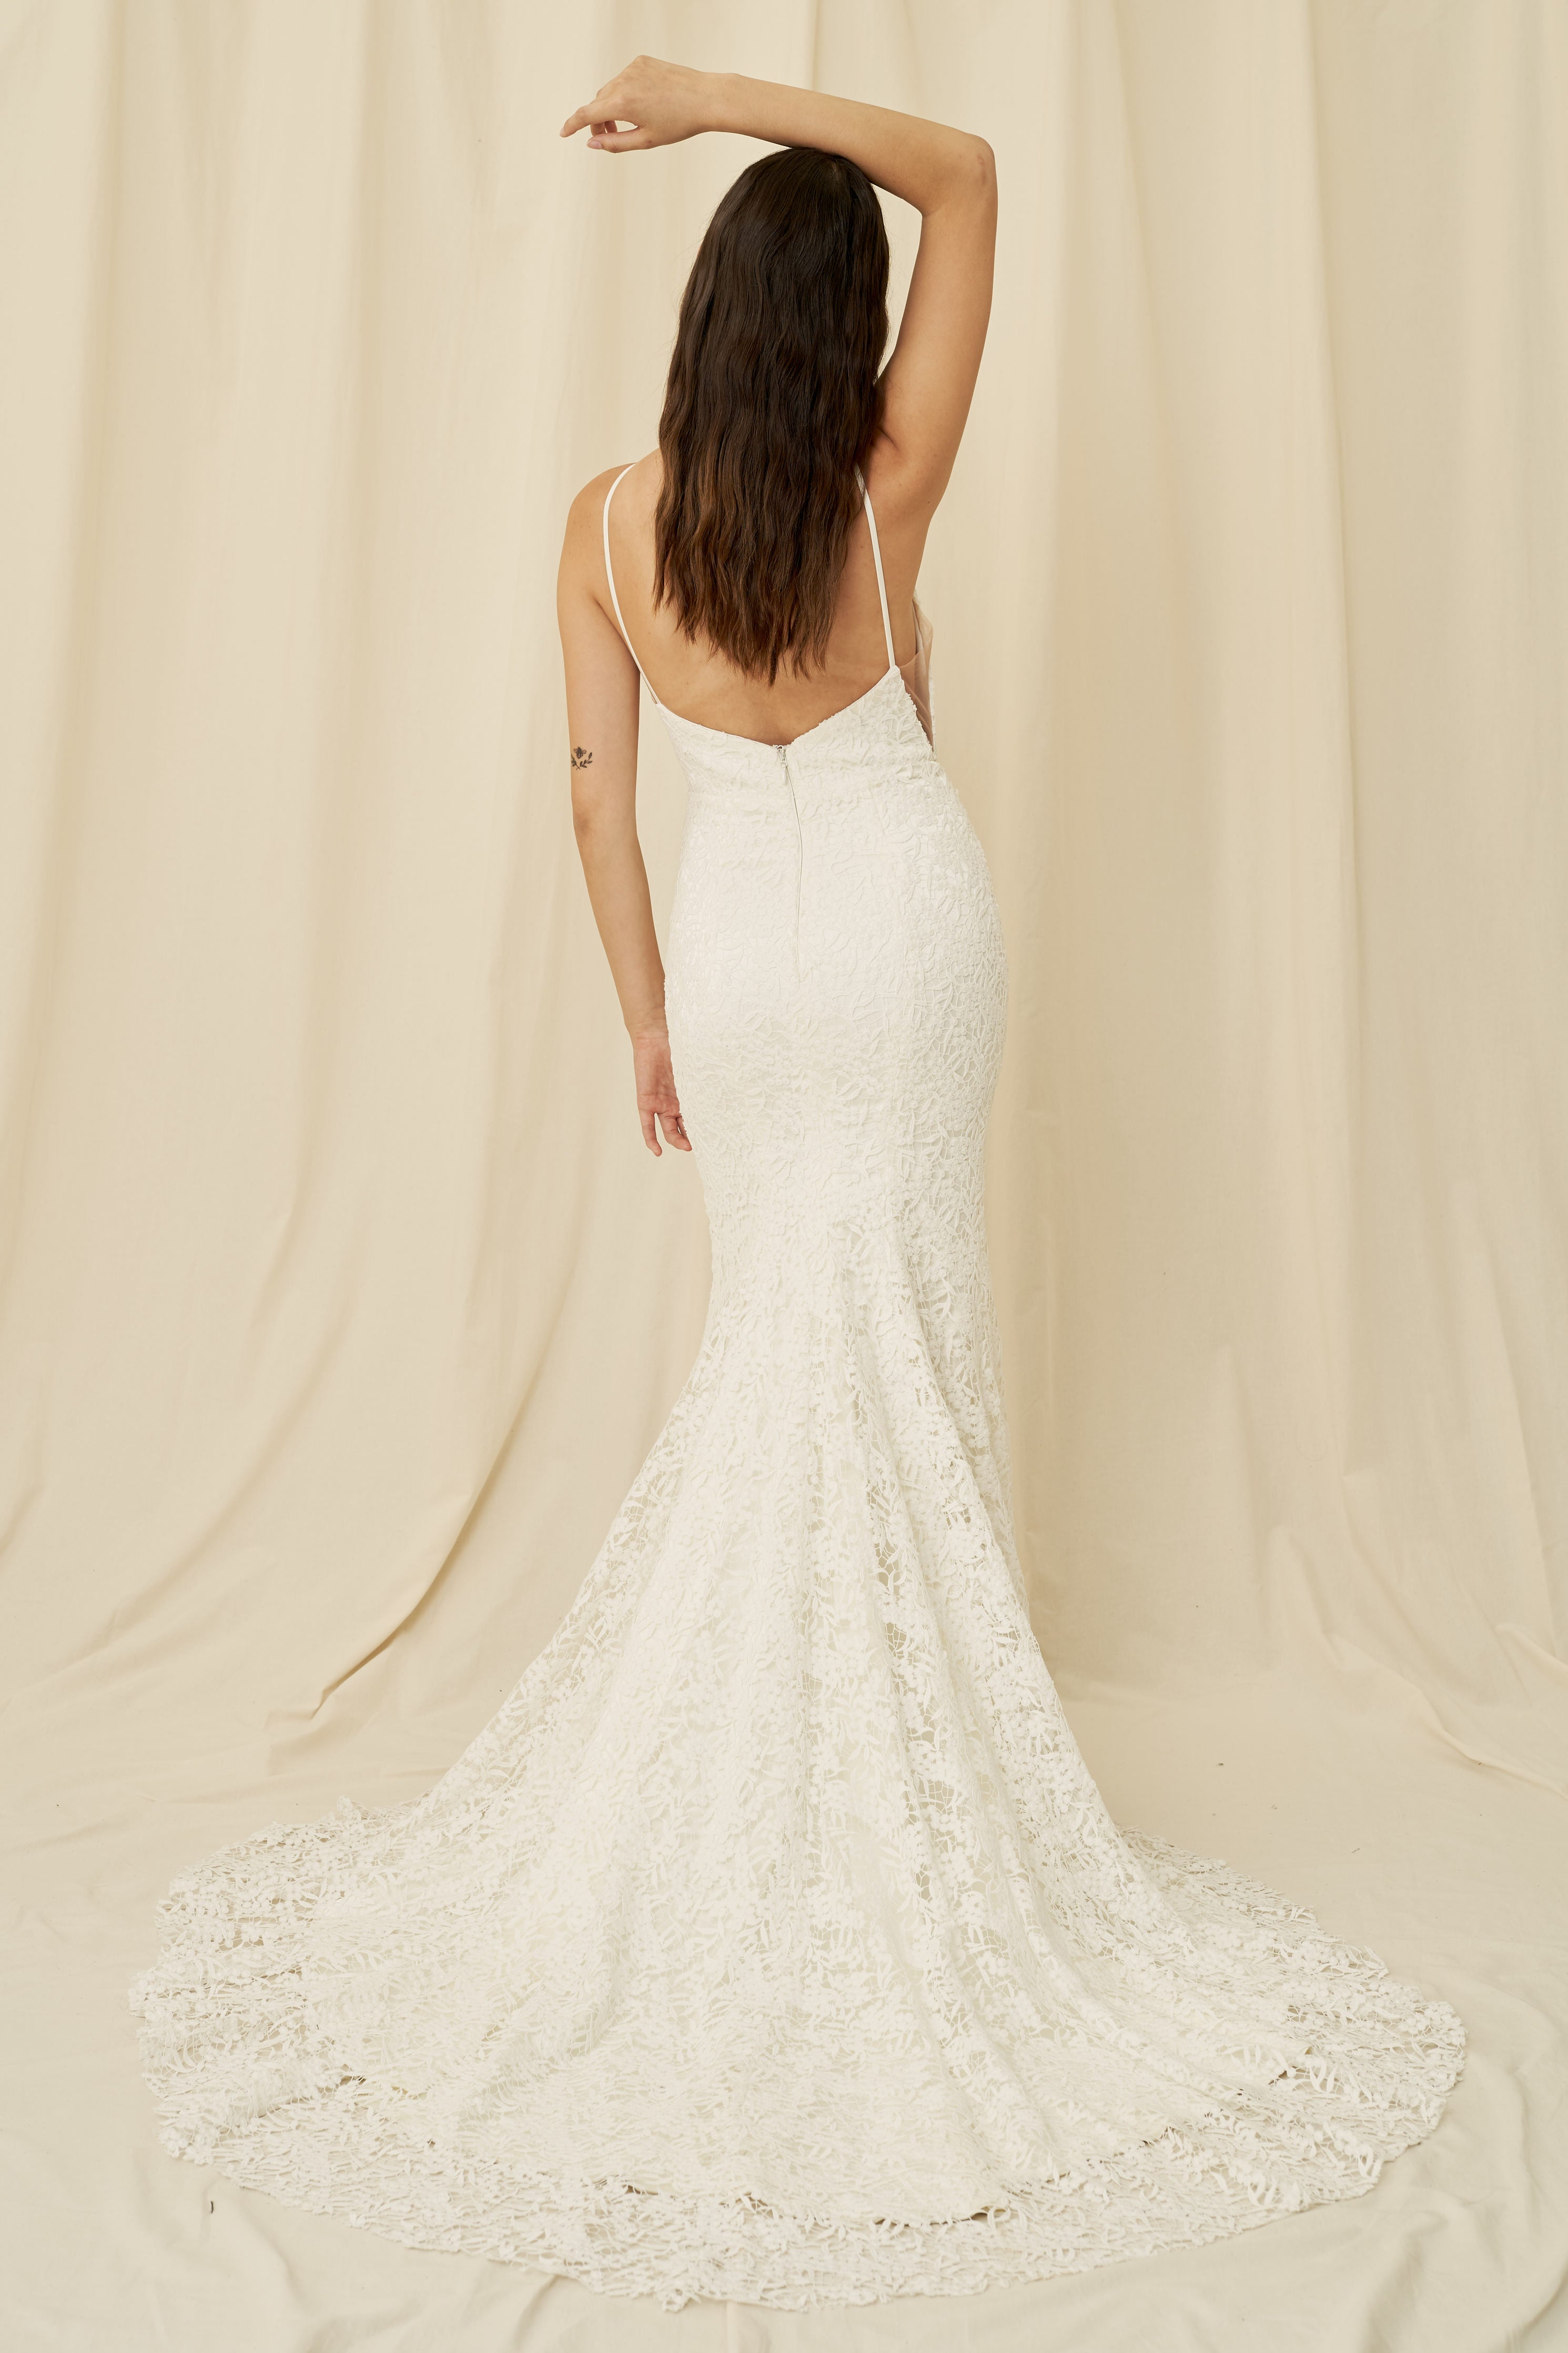 A high-neck lace wedding dress with a low back and a long train